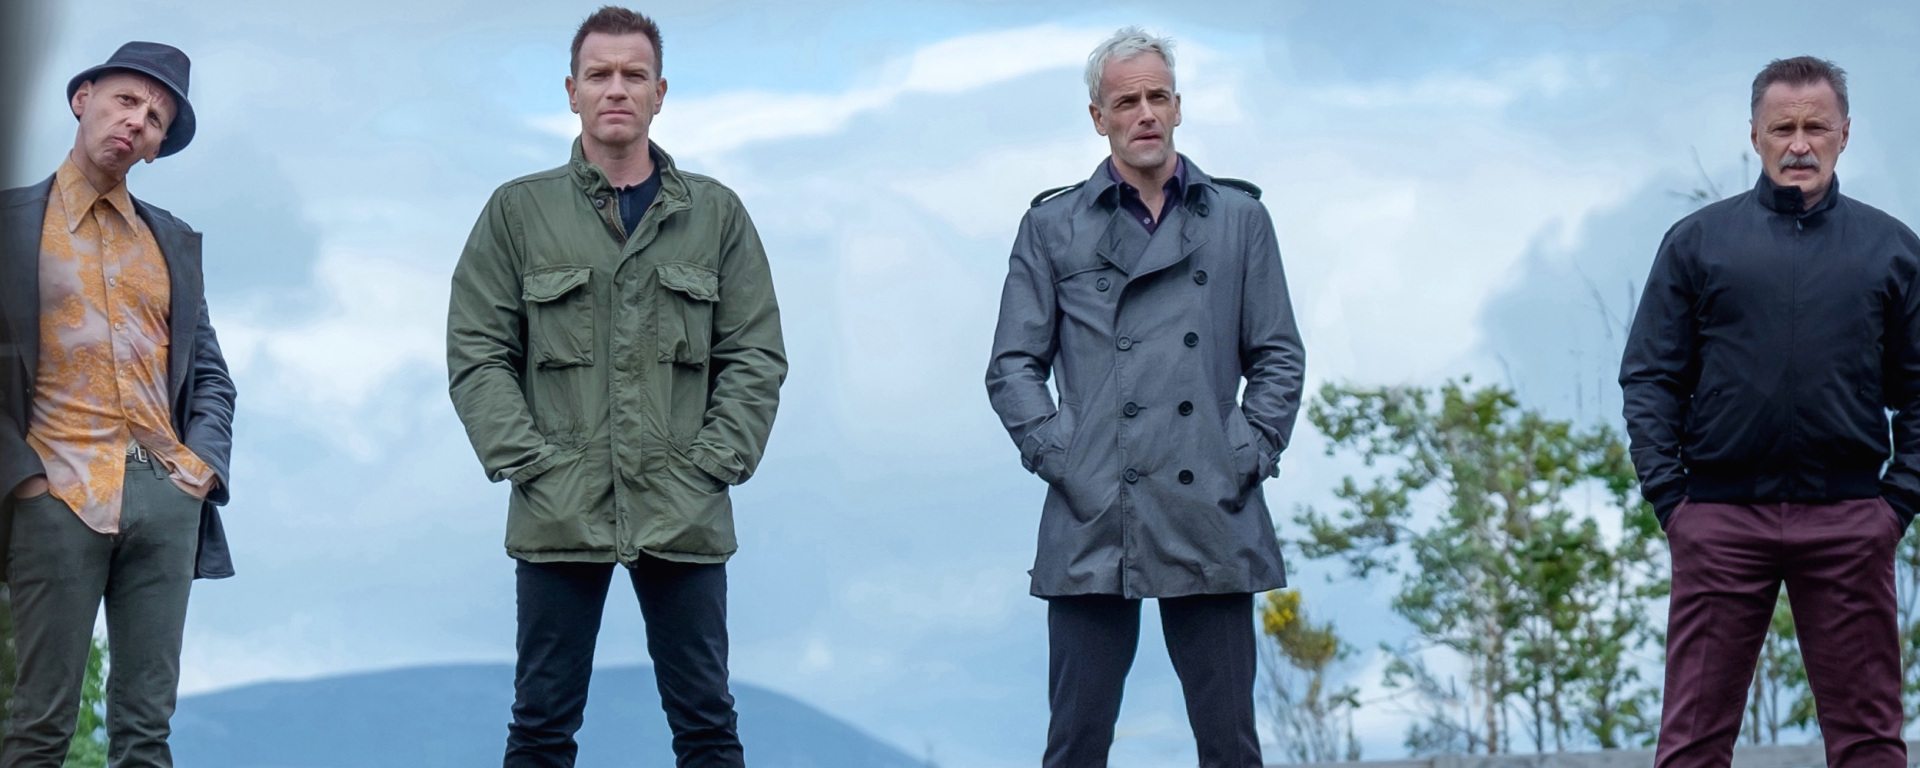 Filmtipp - T2 Trainspotting - Filmtipps.tv